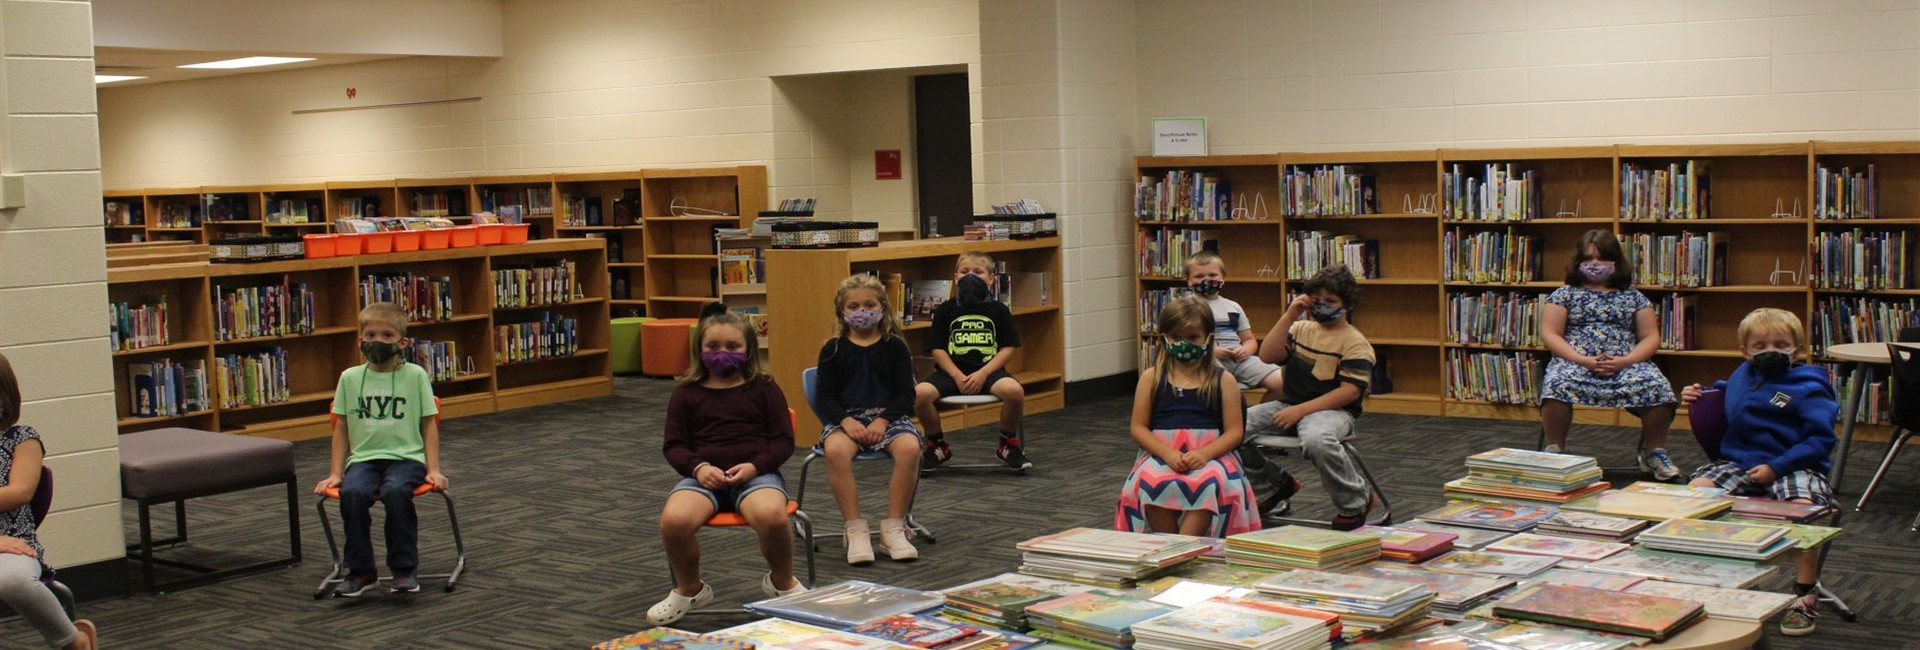 Media Center - where we love to check out books here at WES.